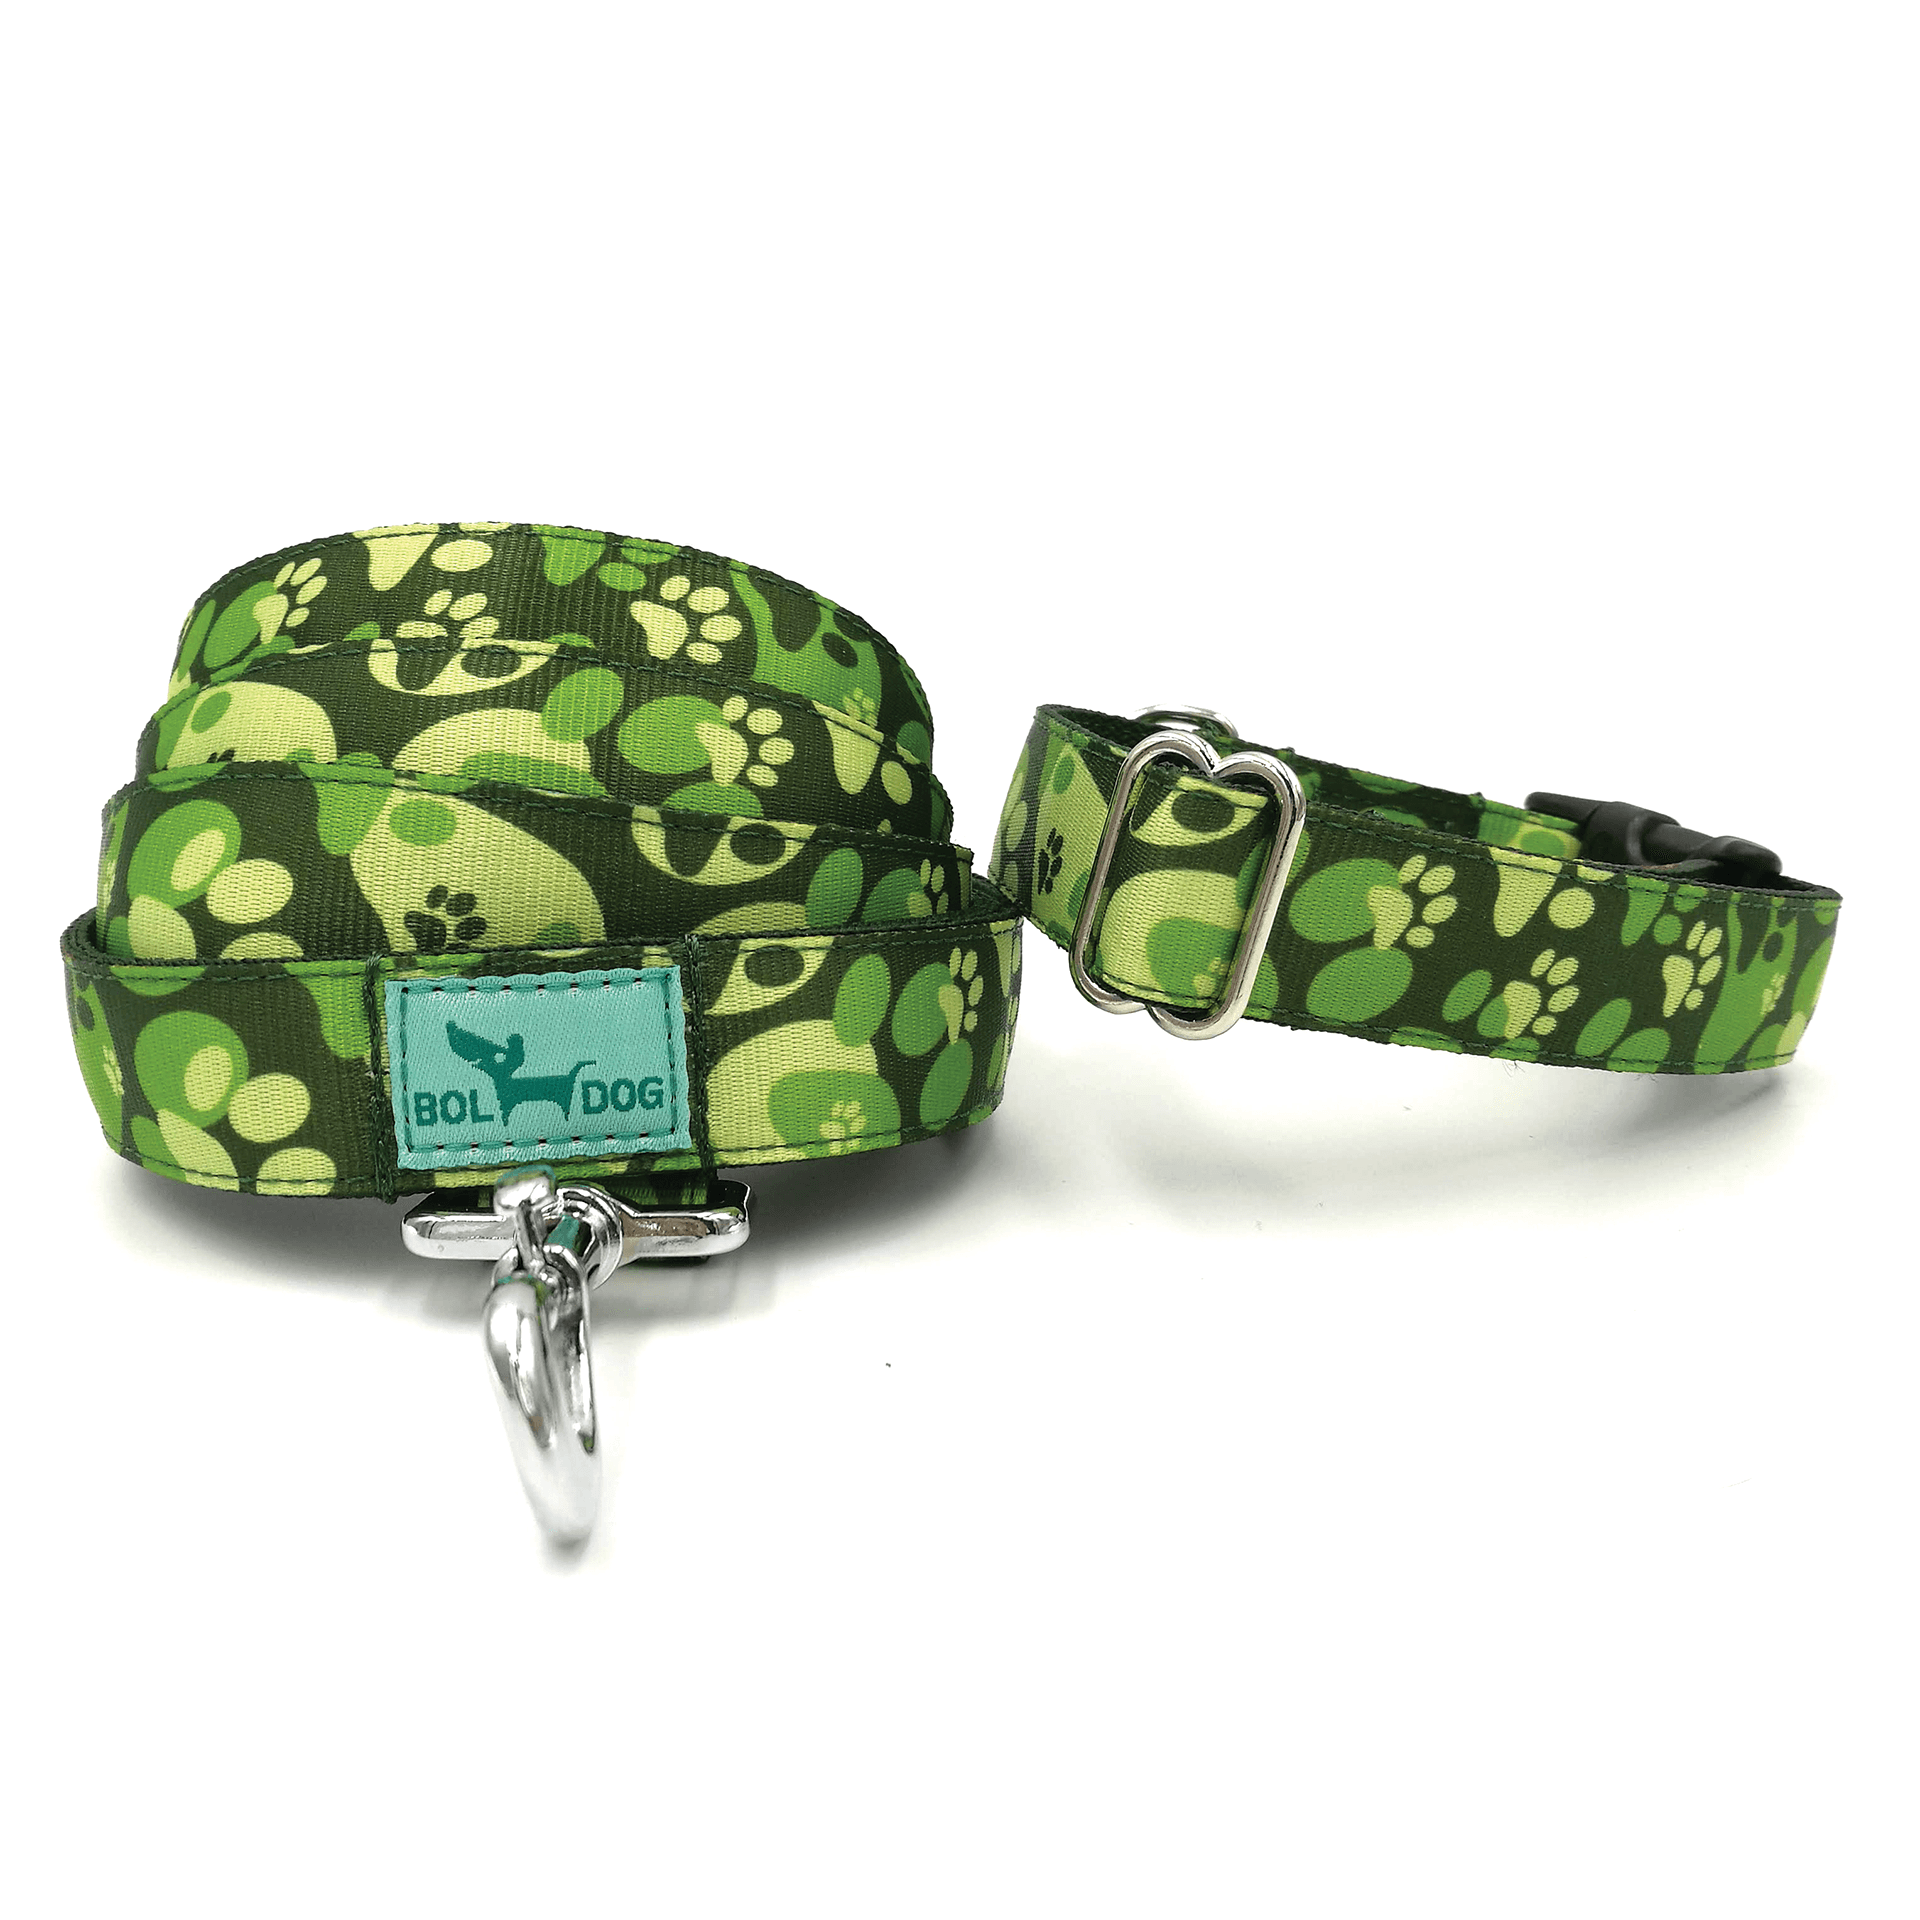 Soldier pattern textile dog collar and leashes